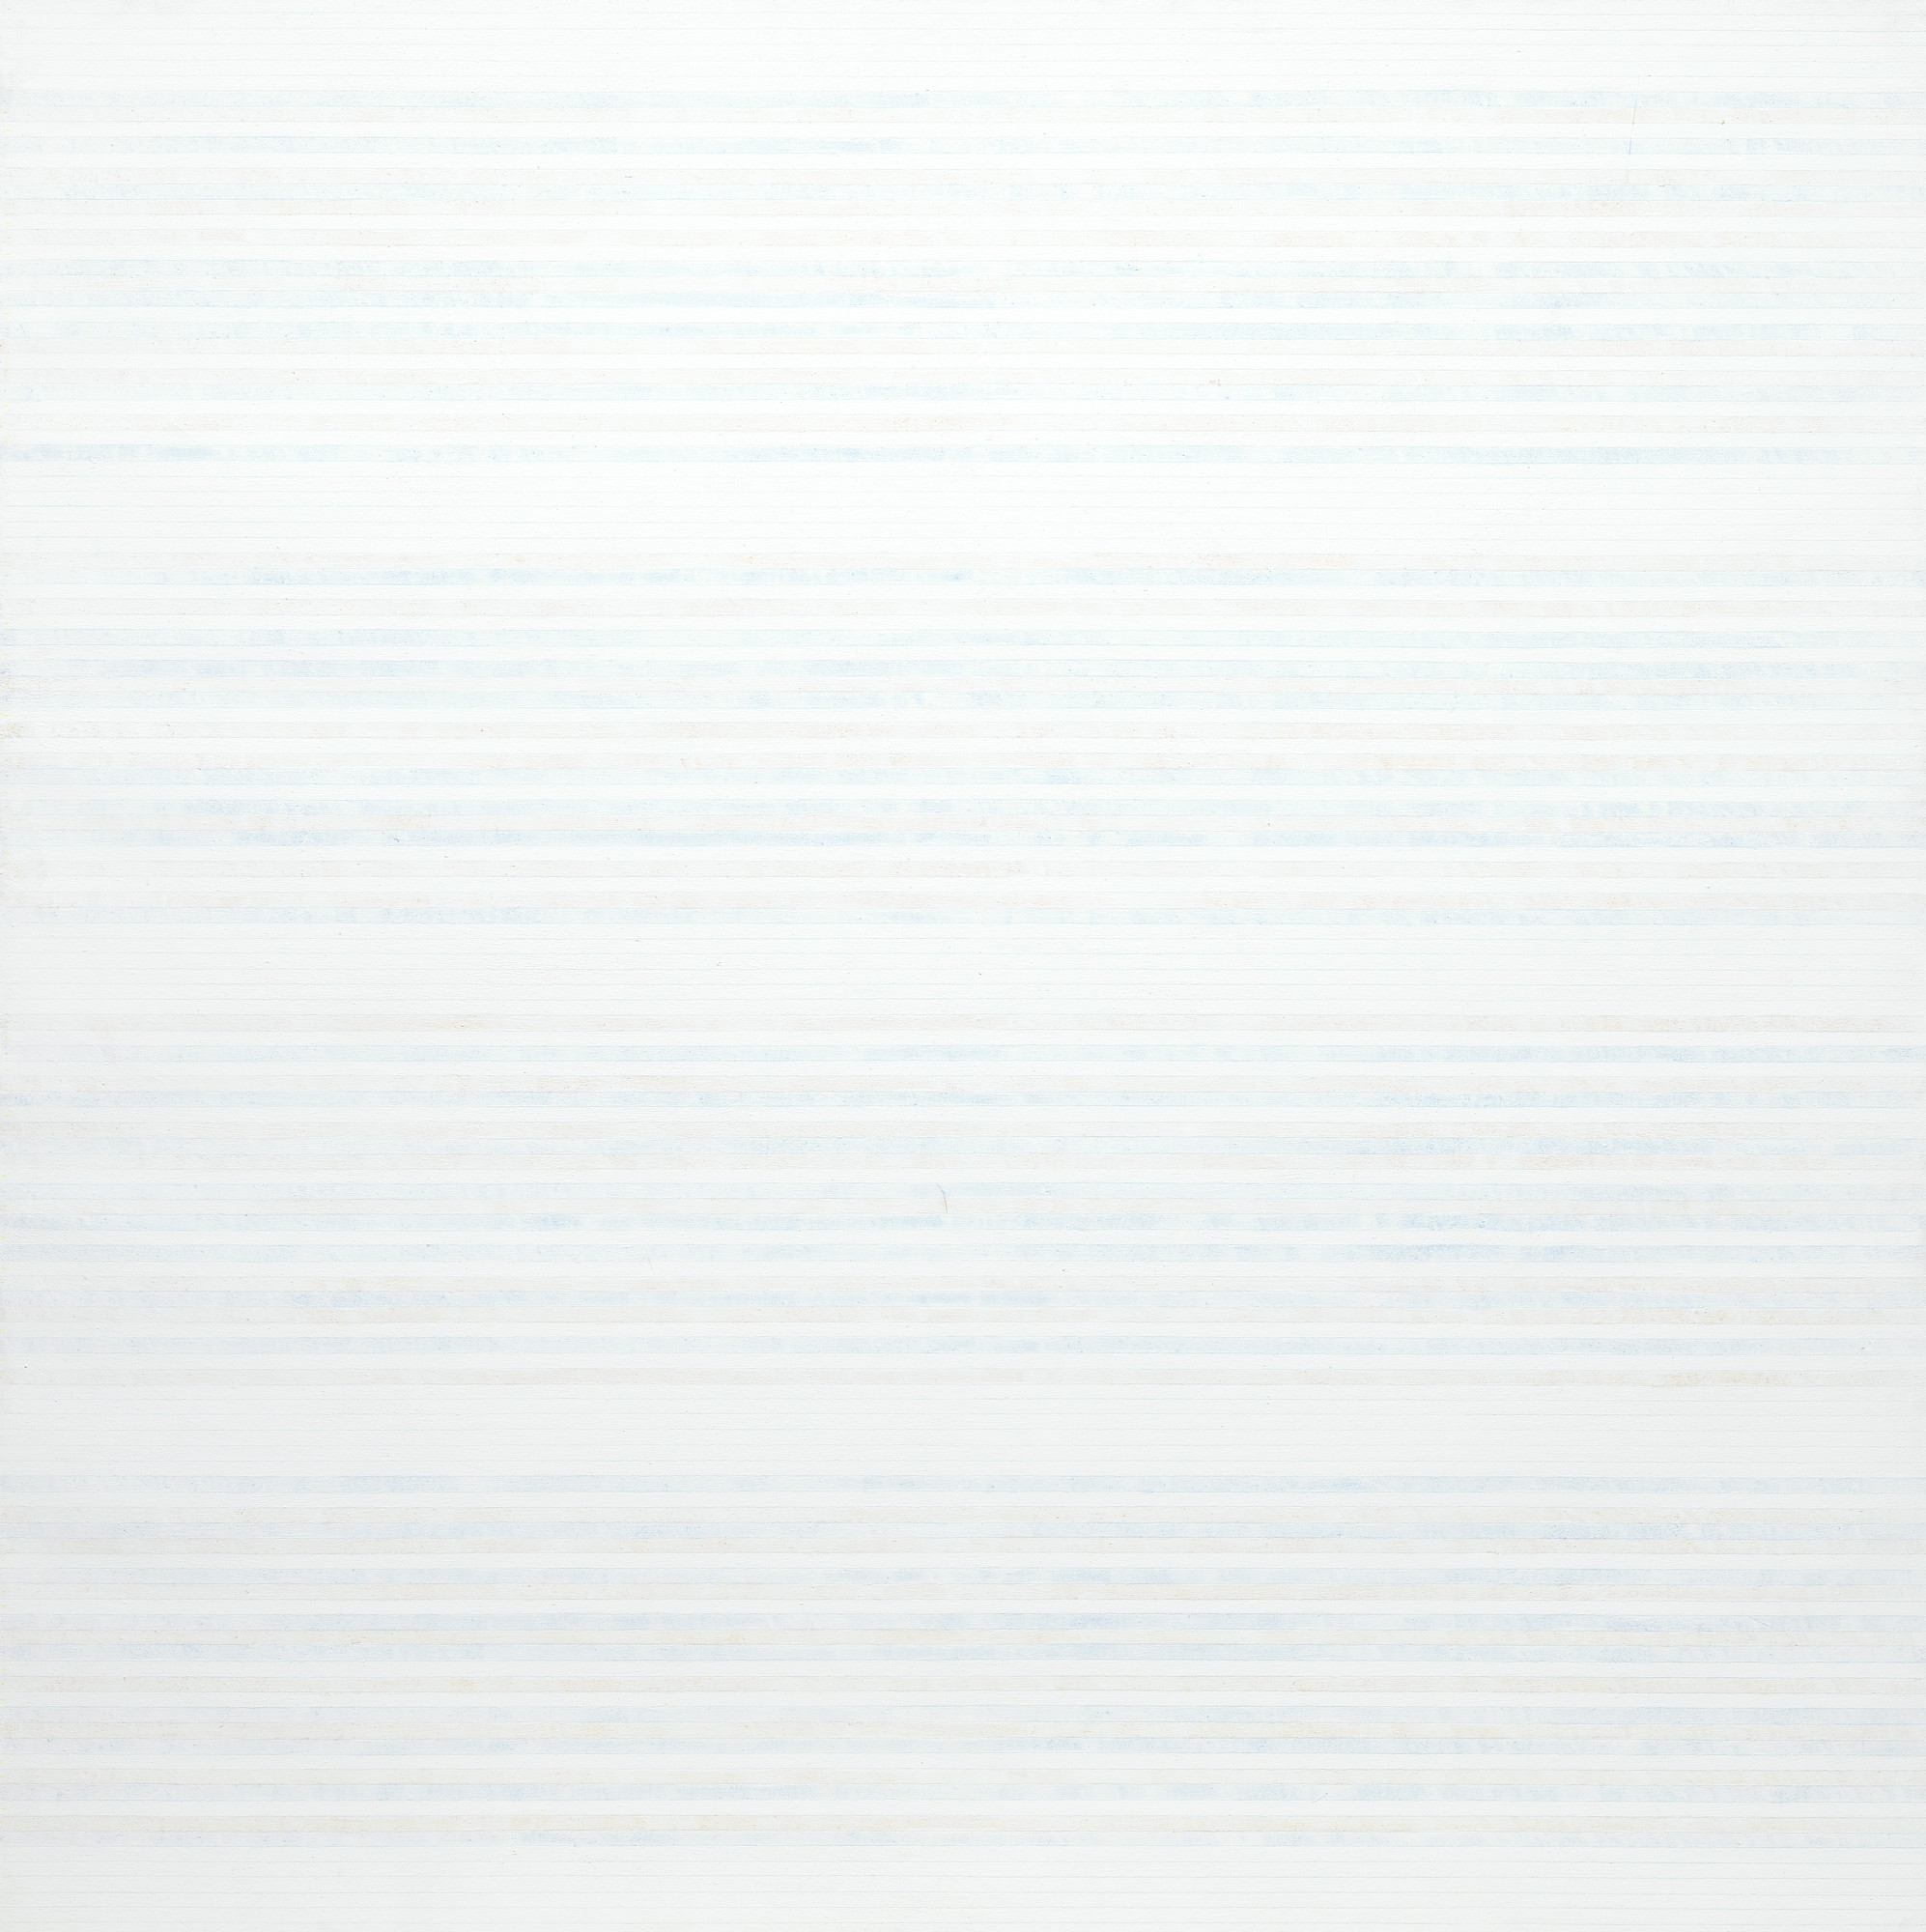 Agnes Martin. Untitled No. 1. 1981